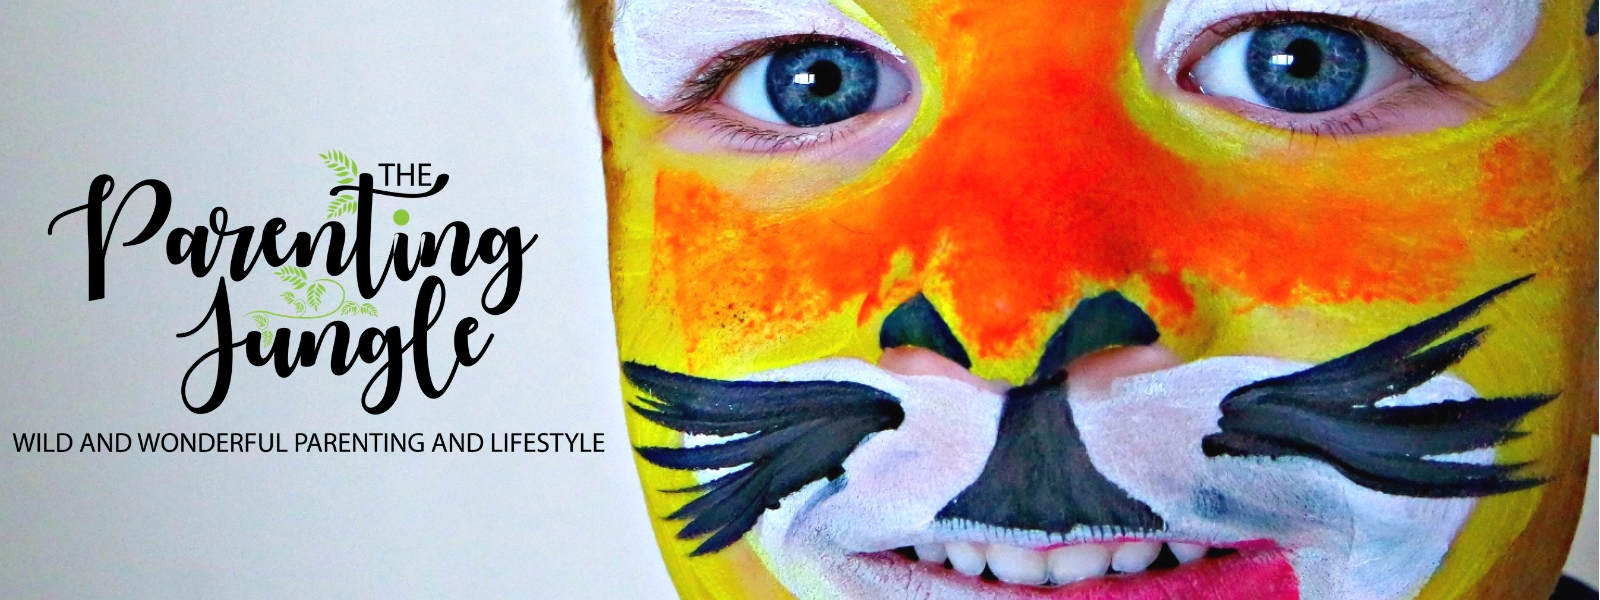 The Parenting Jungle – Wild & Wonderful Parenting & Lifestyle